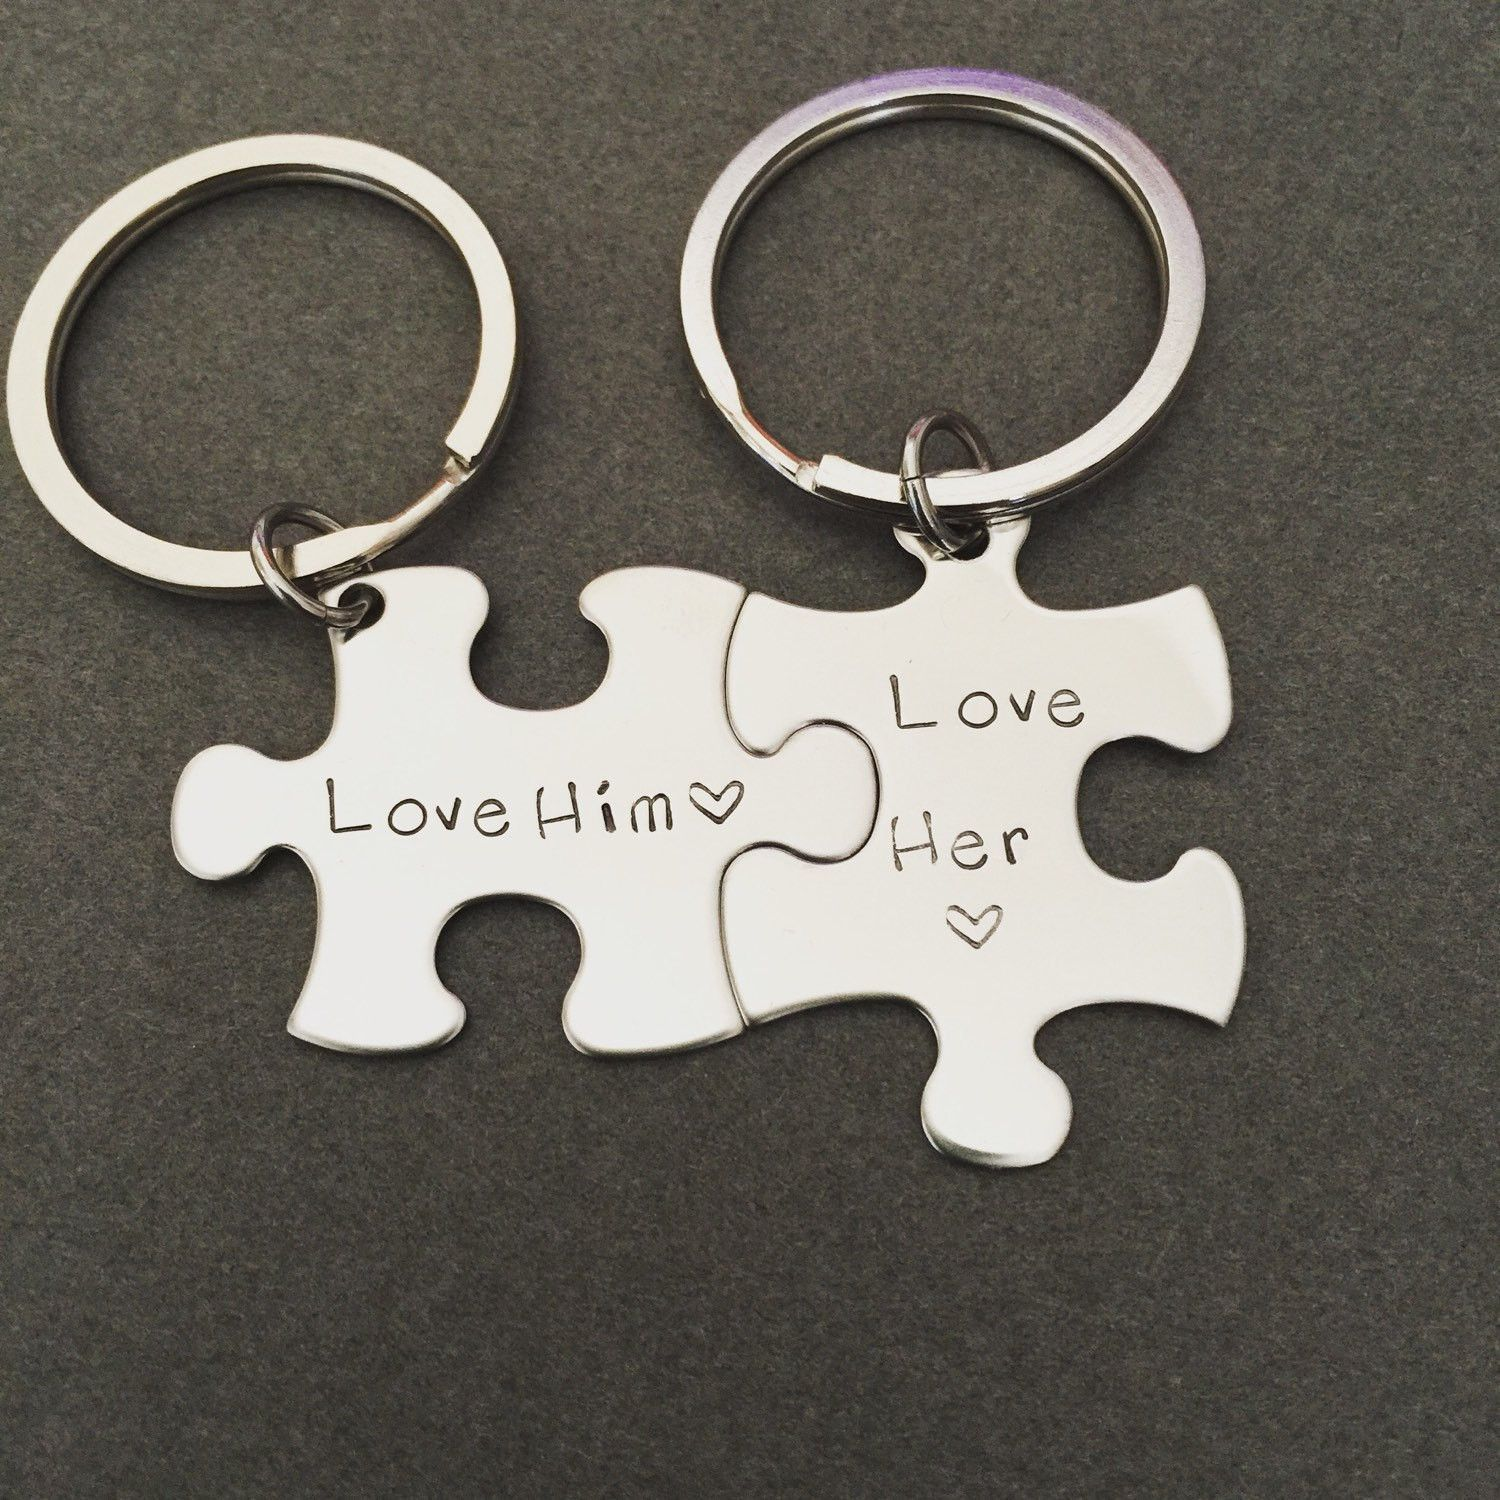 love him love her keychains personalized keychains couples